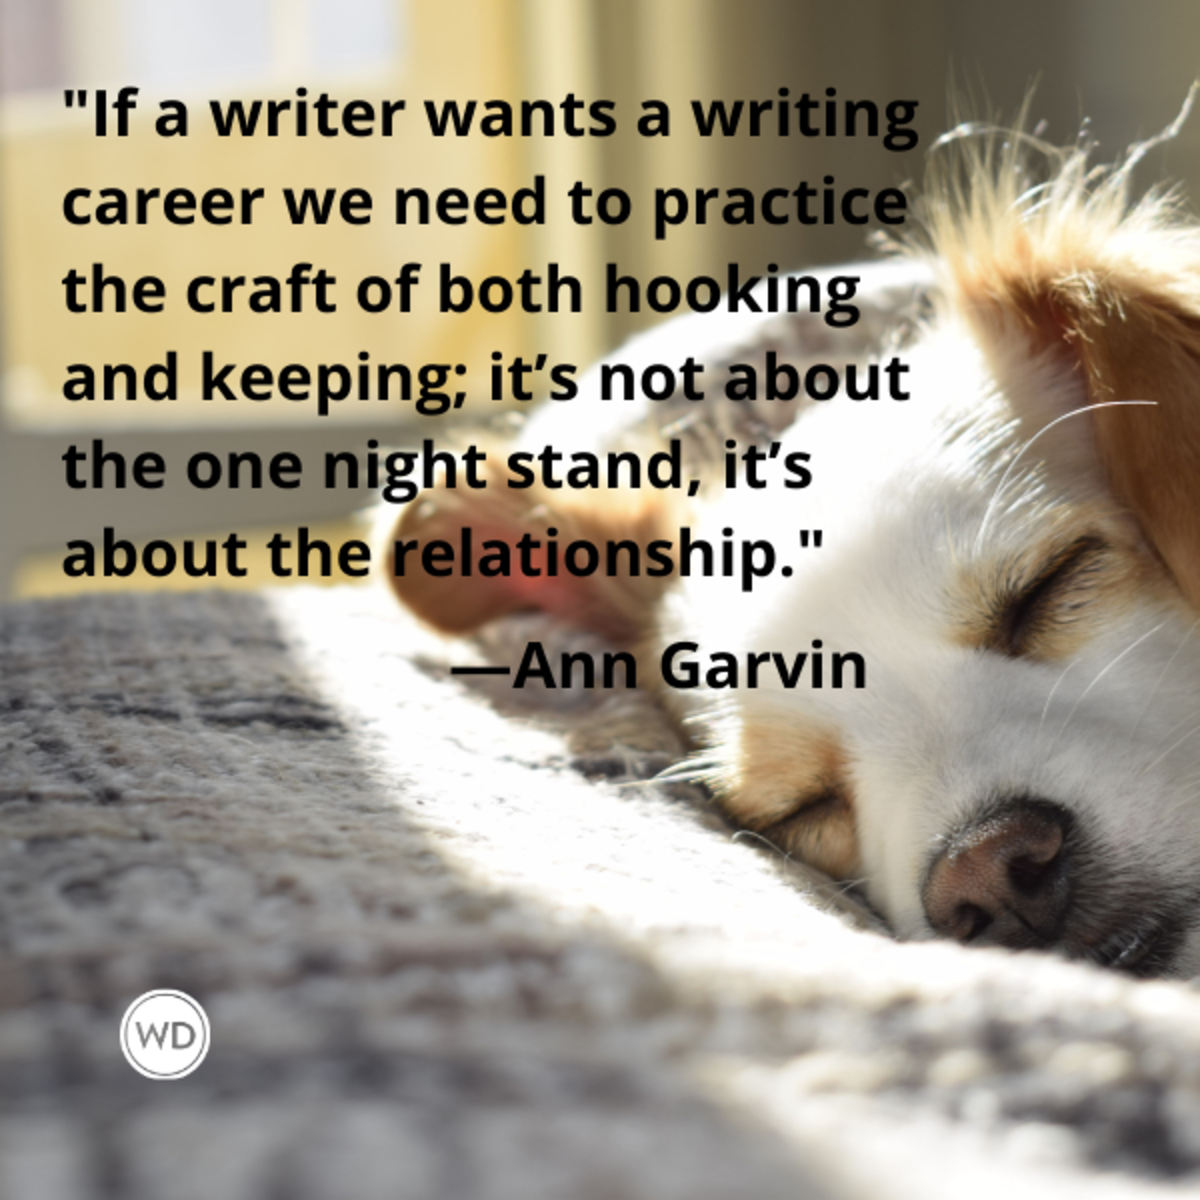 ann_garvin_quotes_if_a_writer_wants_a_writing_career_we_need_to_practice_the_craft_of_both_hooking_and_keeping_readers_writing_advice_with_dogs